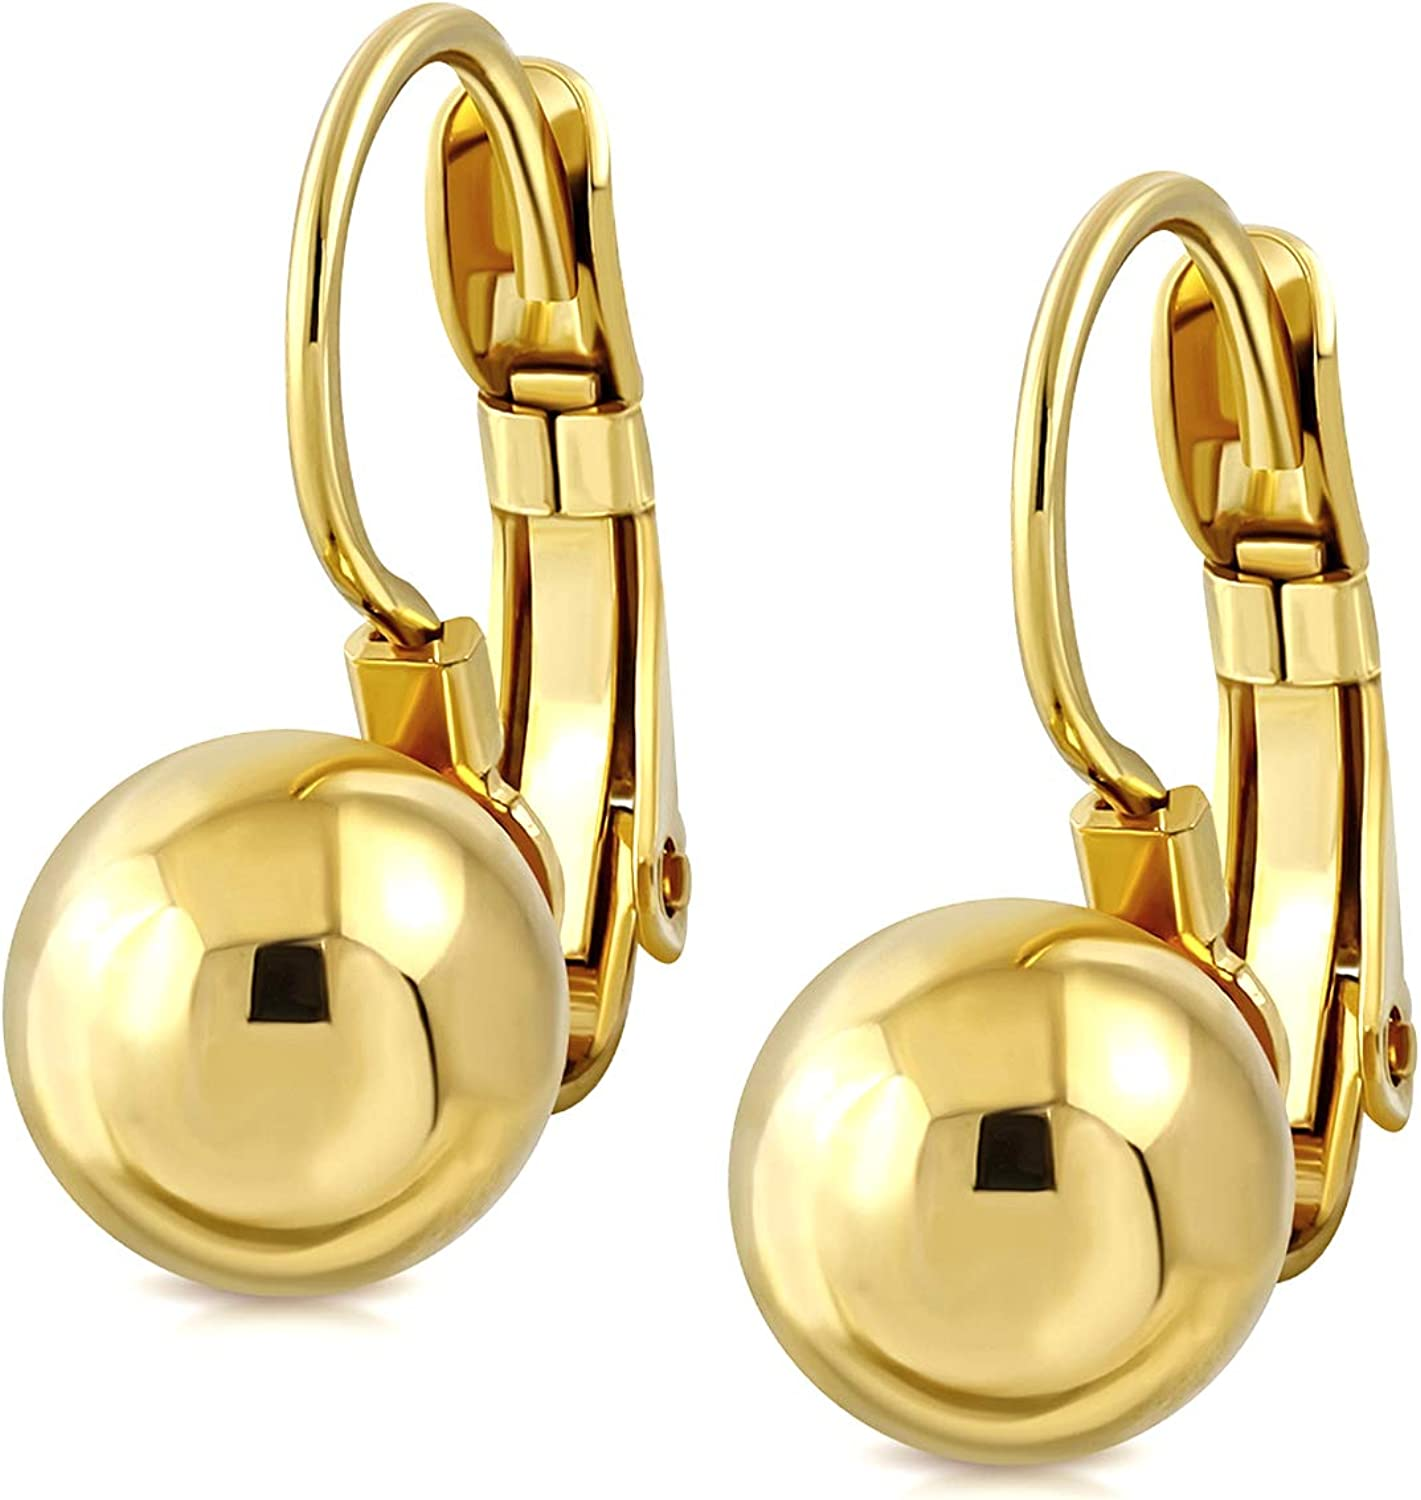 555Jewelry Womens Stainless Steel Bead Ball Round Dangle Drop Leverback Earrings